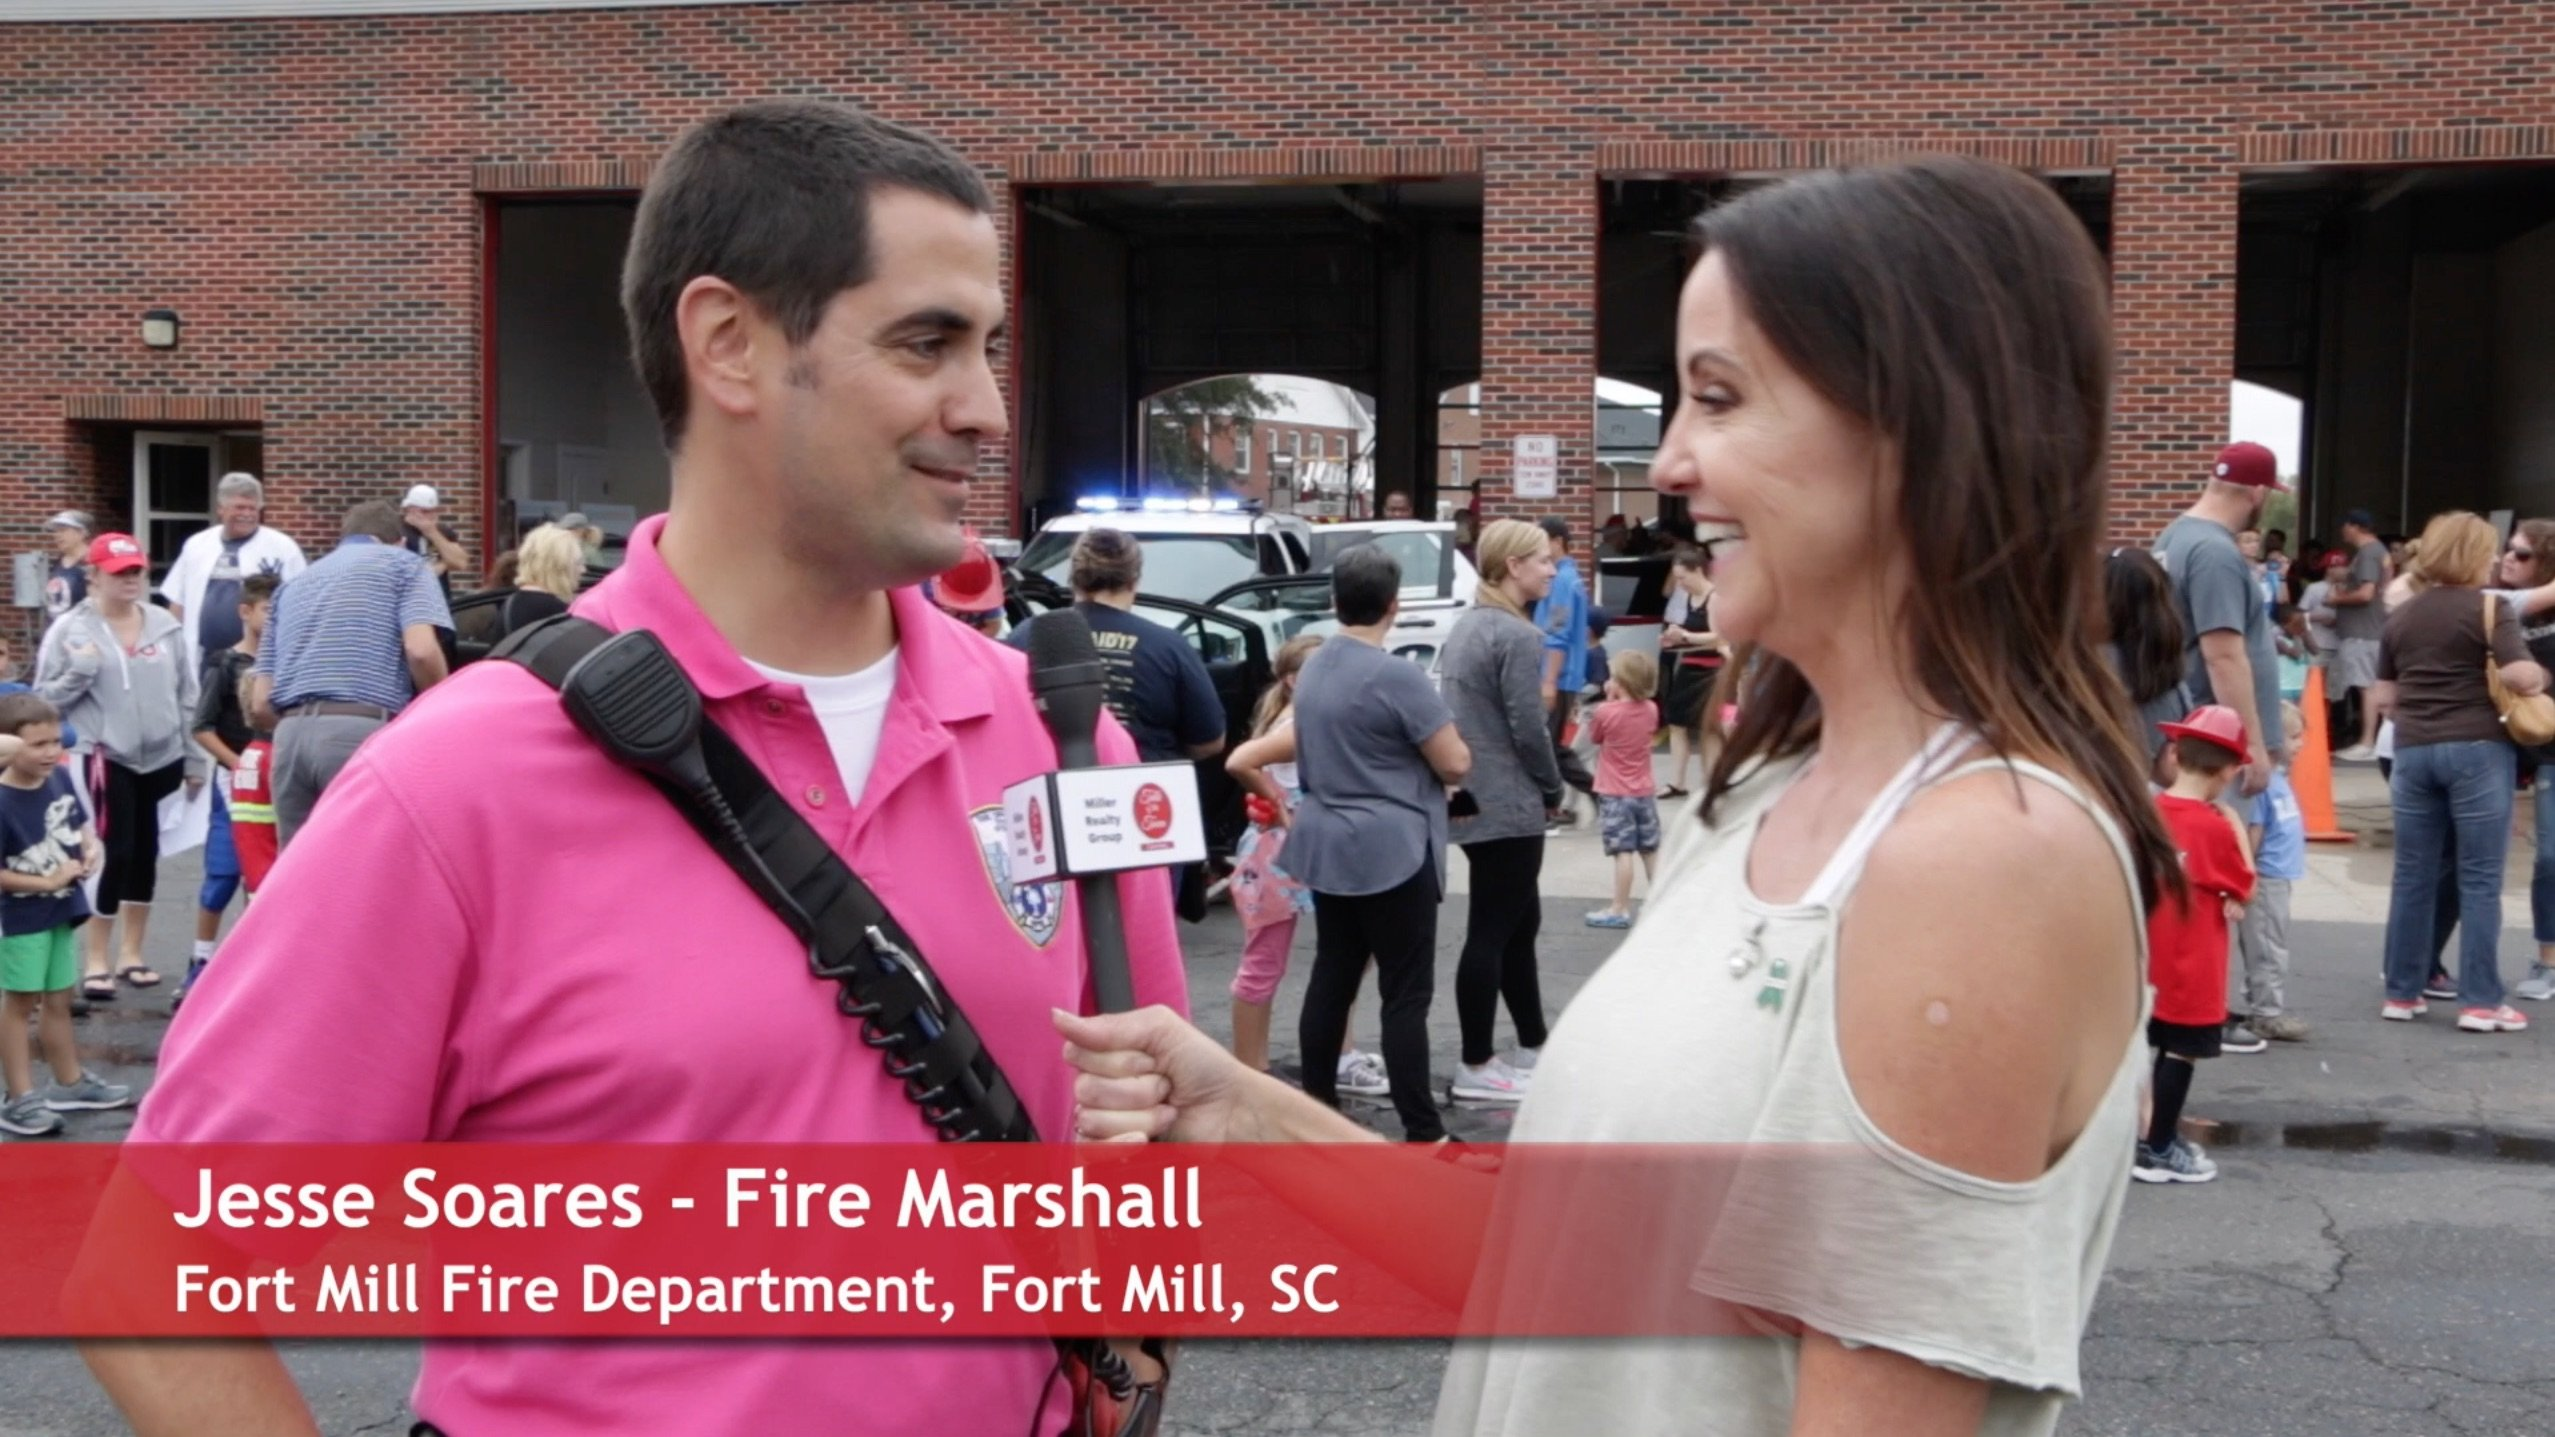 See The Fort Mill Fire Department Open House